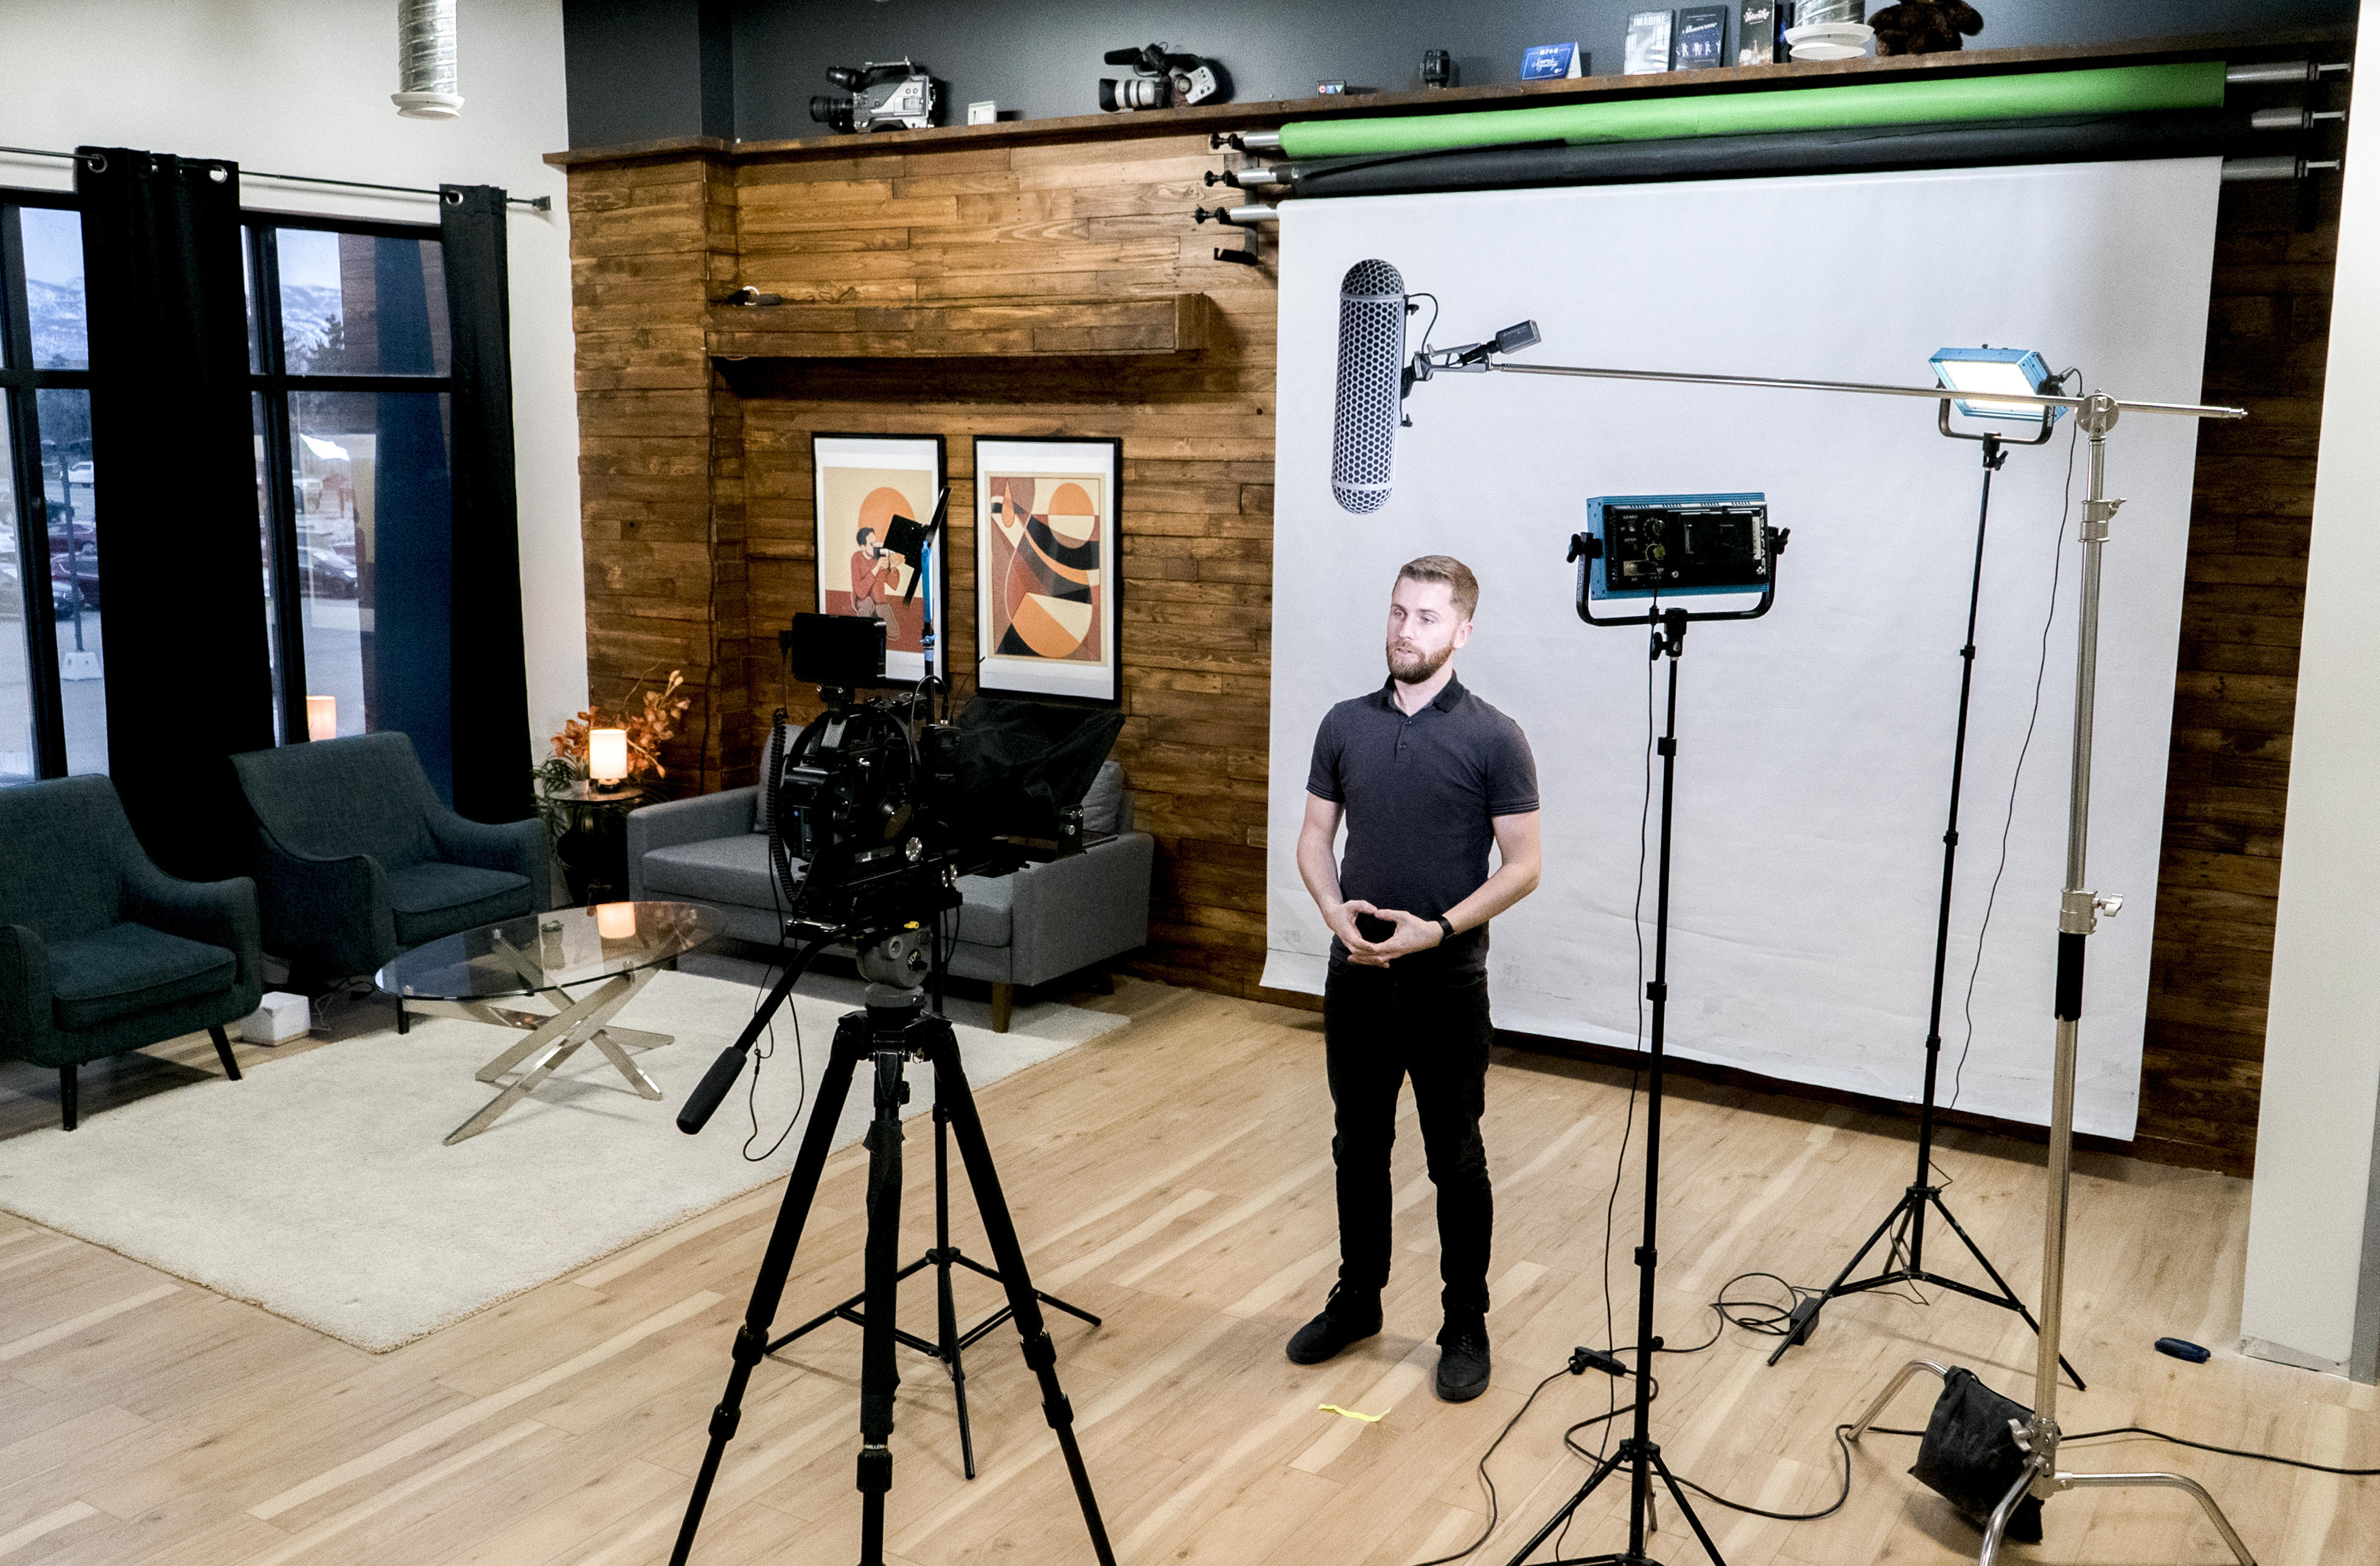 Video production services in Kelowna